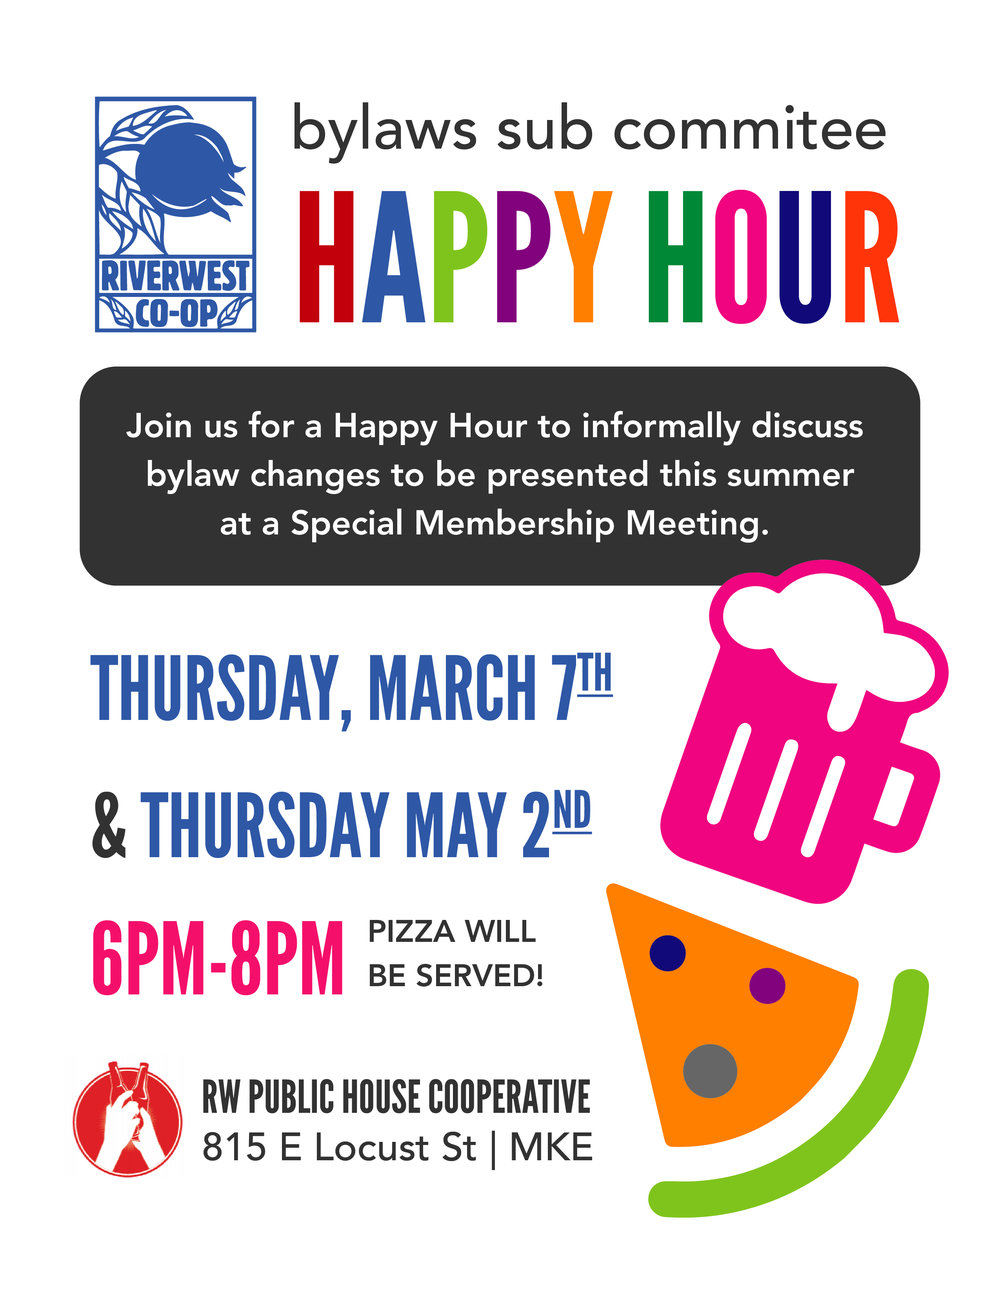 Bylaws-Happy-Hour-Flyer-01.jpg